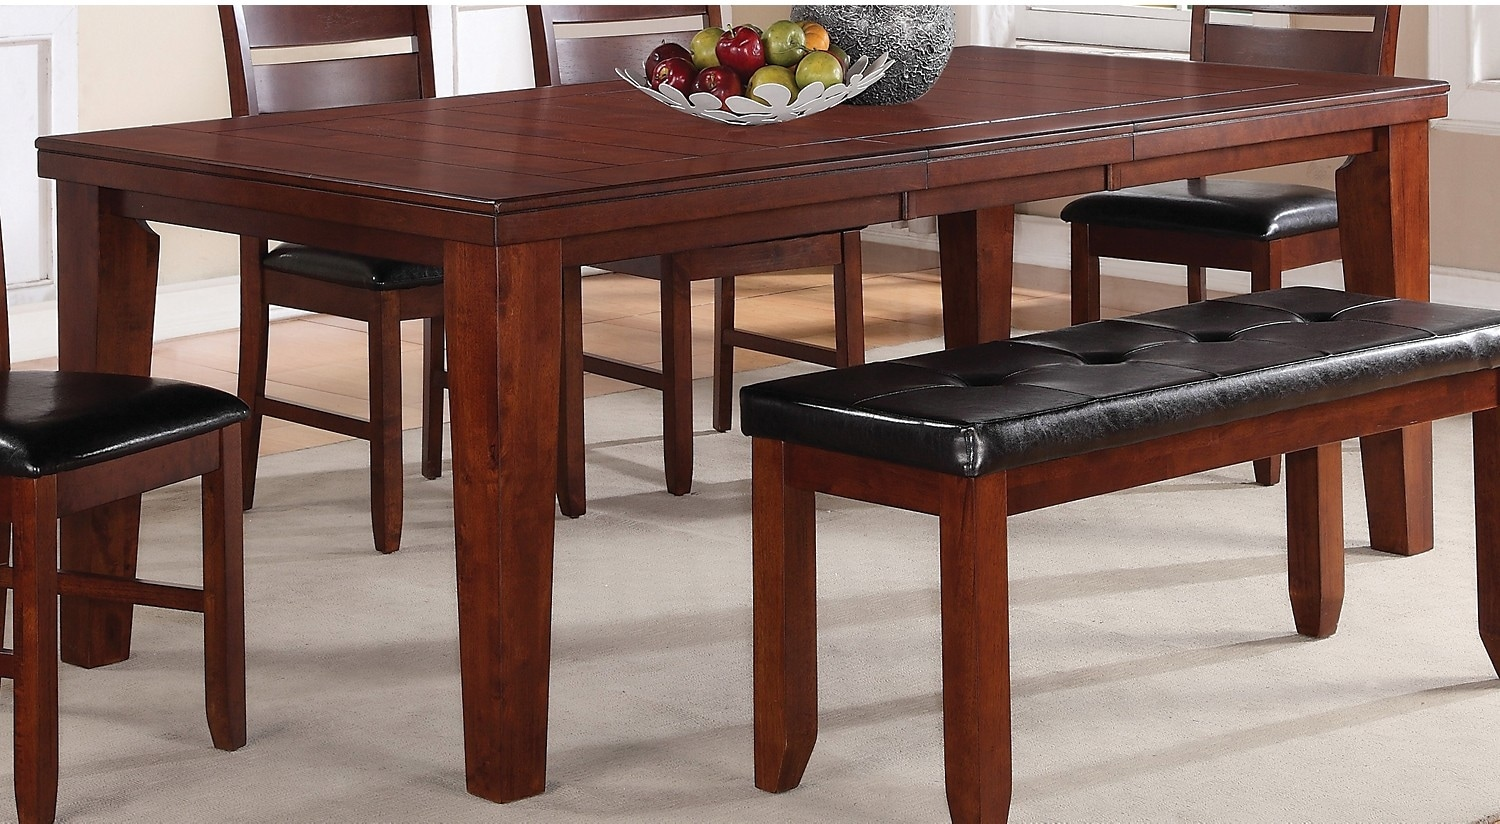 The Brick Dining Room Furniture Dining Room Furniture Chloe Dining Table Detail Good Colors